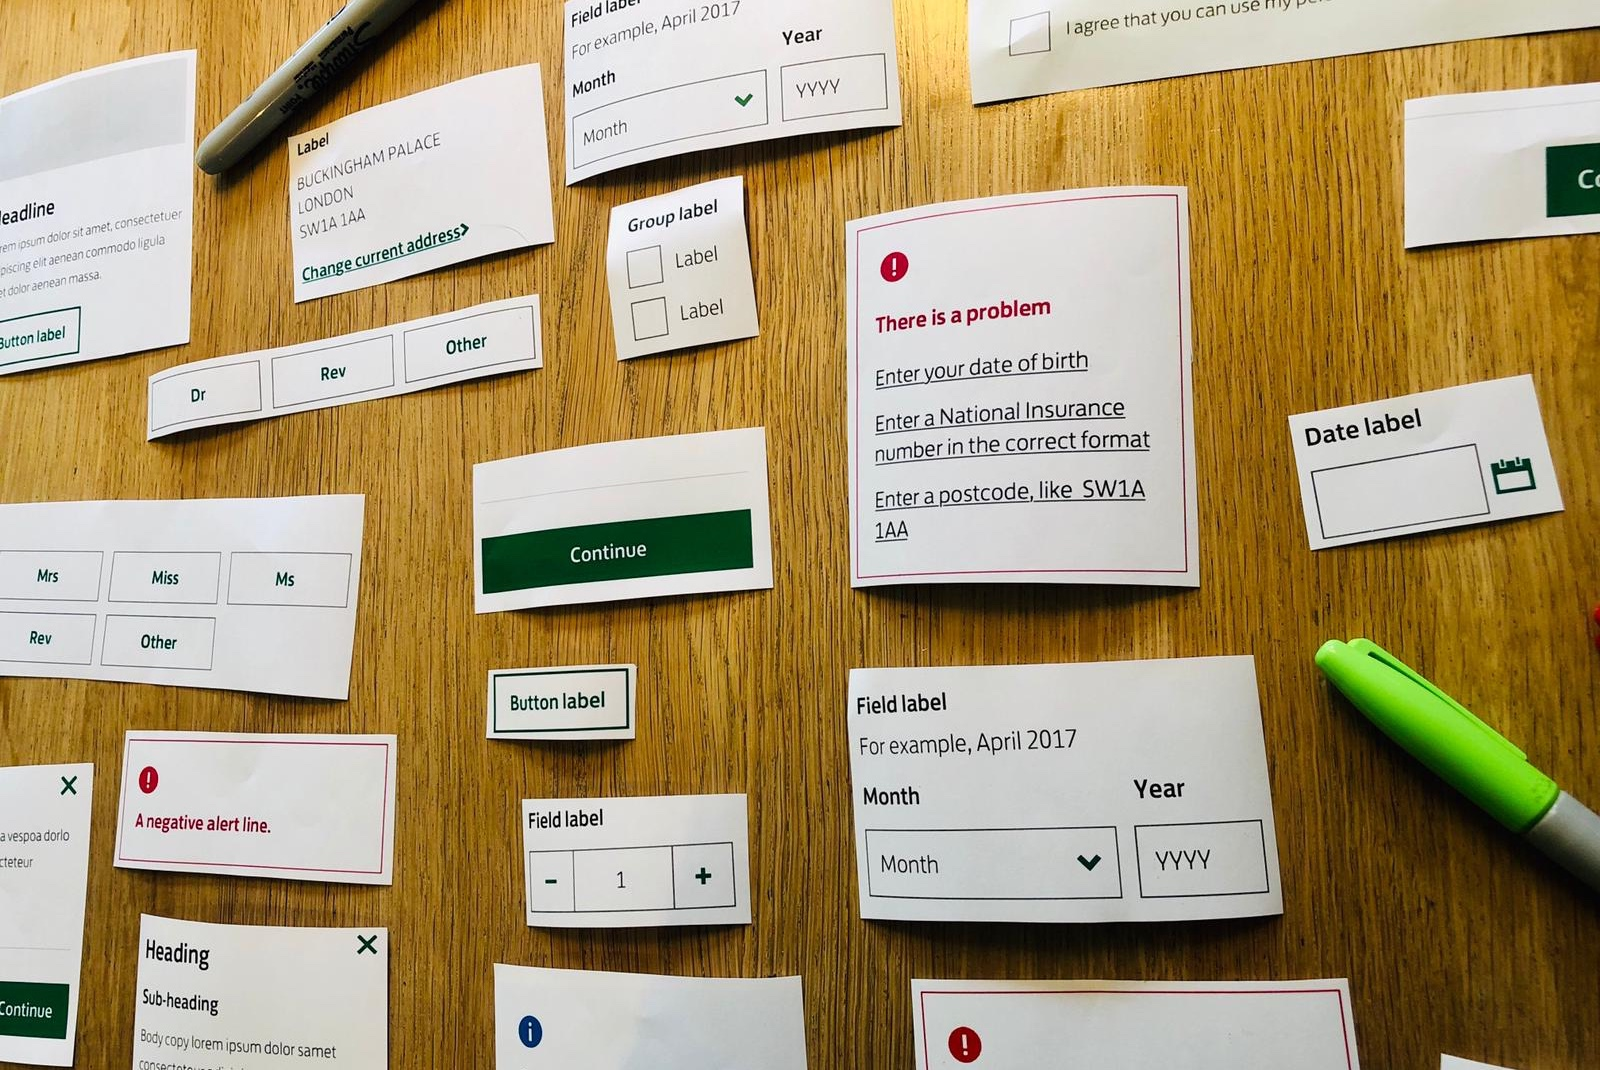 Paper print outs of components from a Lloyds website